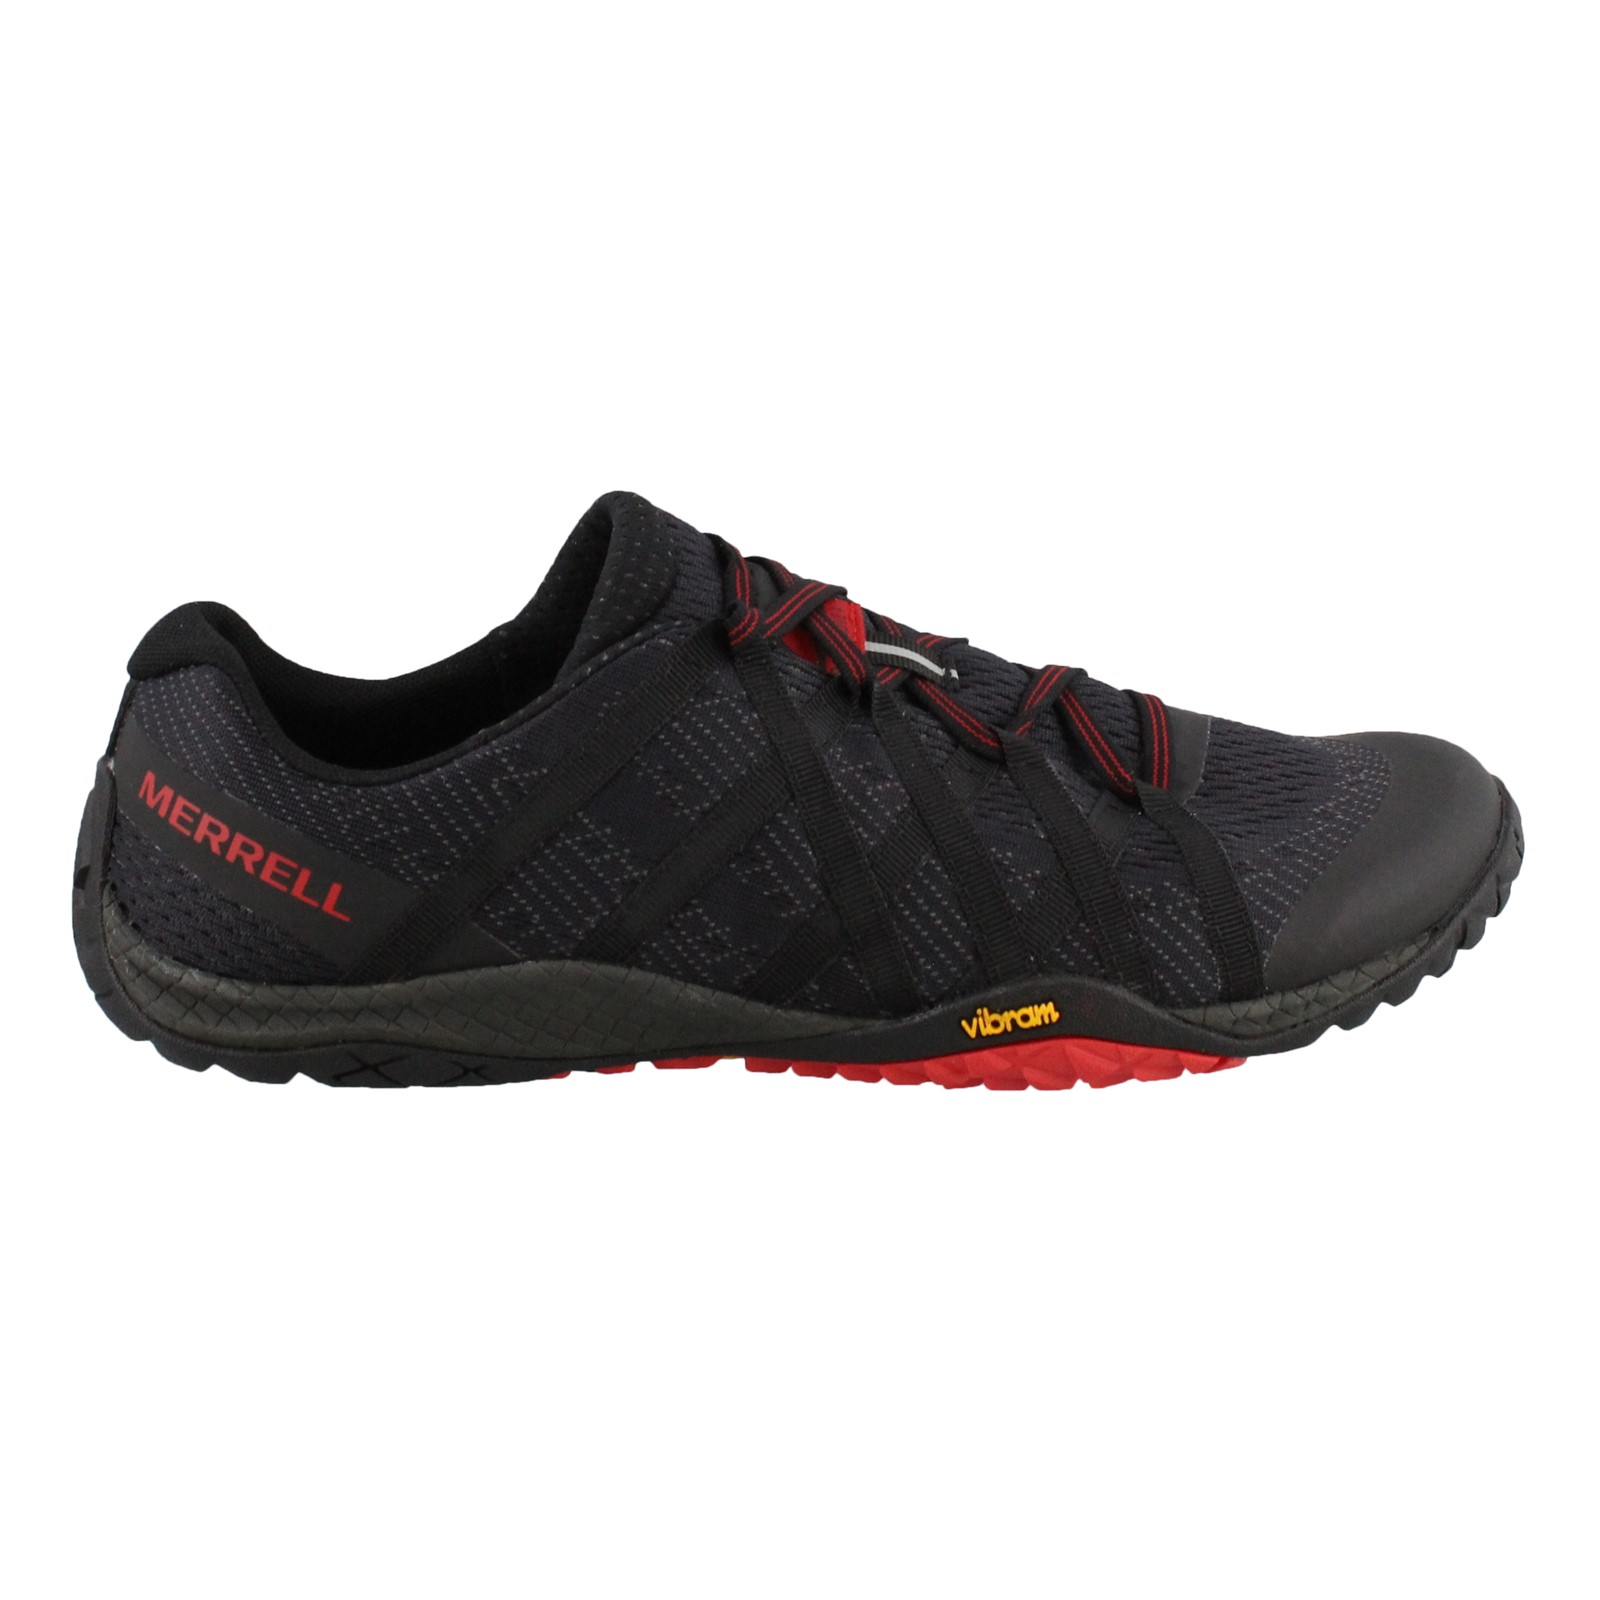 new concept 2cf63 ac651 Men's Merrell, Trail Glove 4 E Mesh Trail Running Shoes